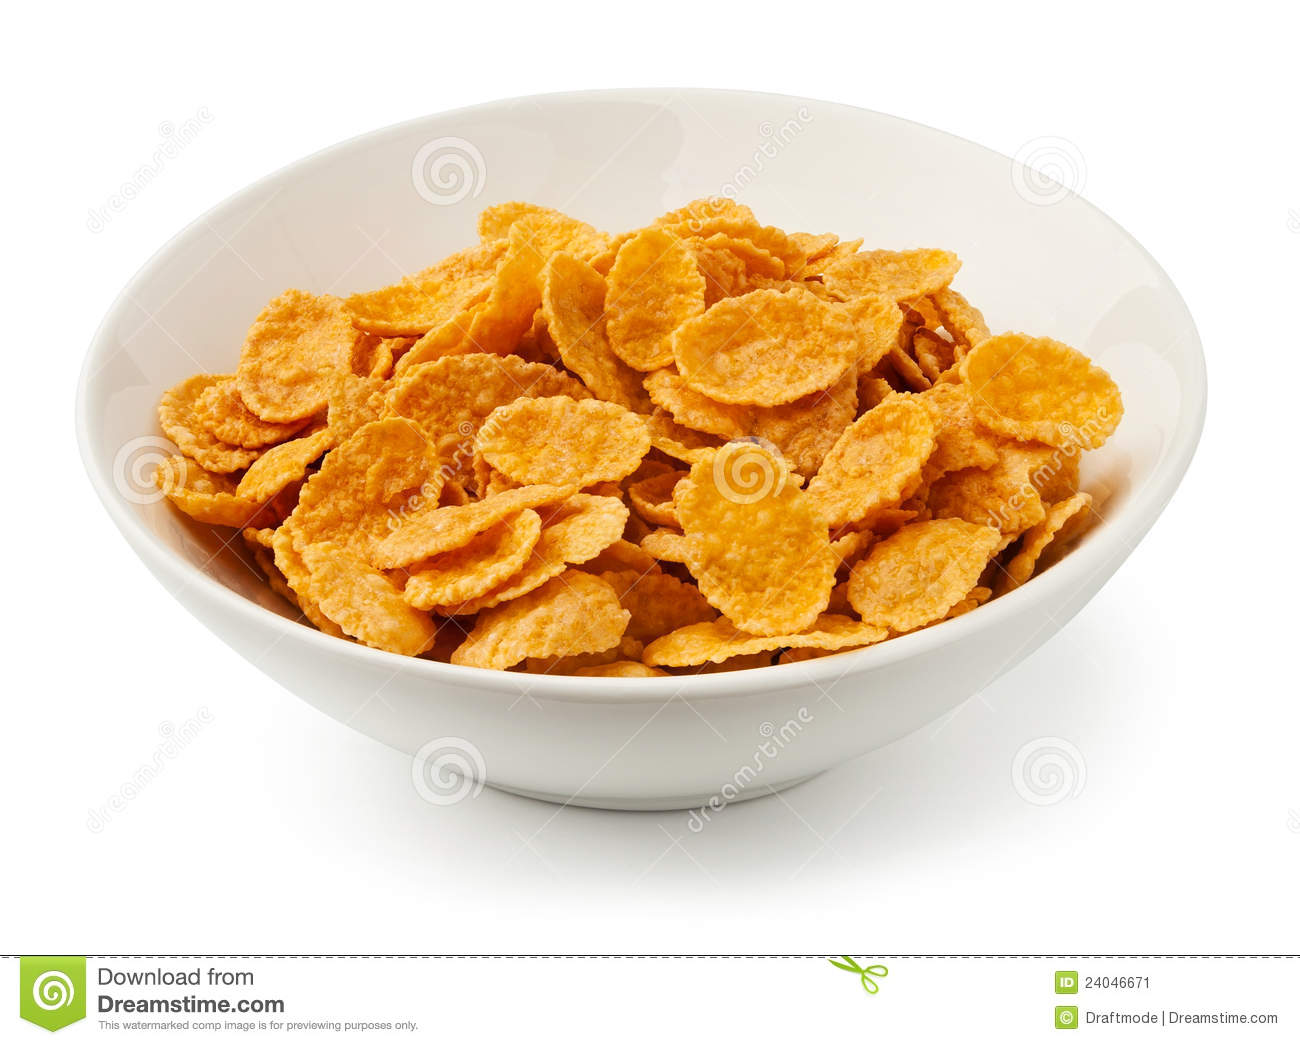 More similar stock images of ` Corn flakes in a bowl `